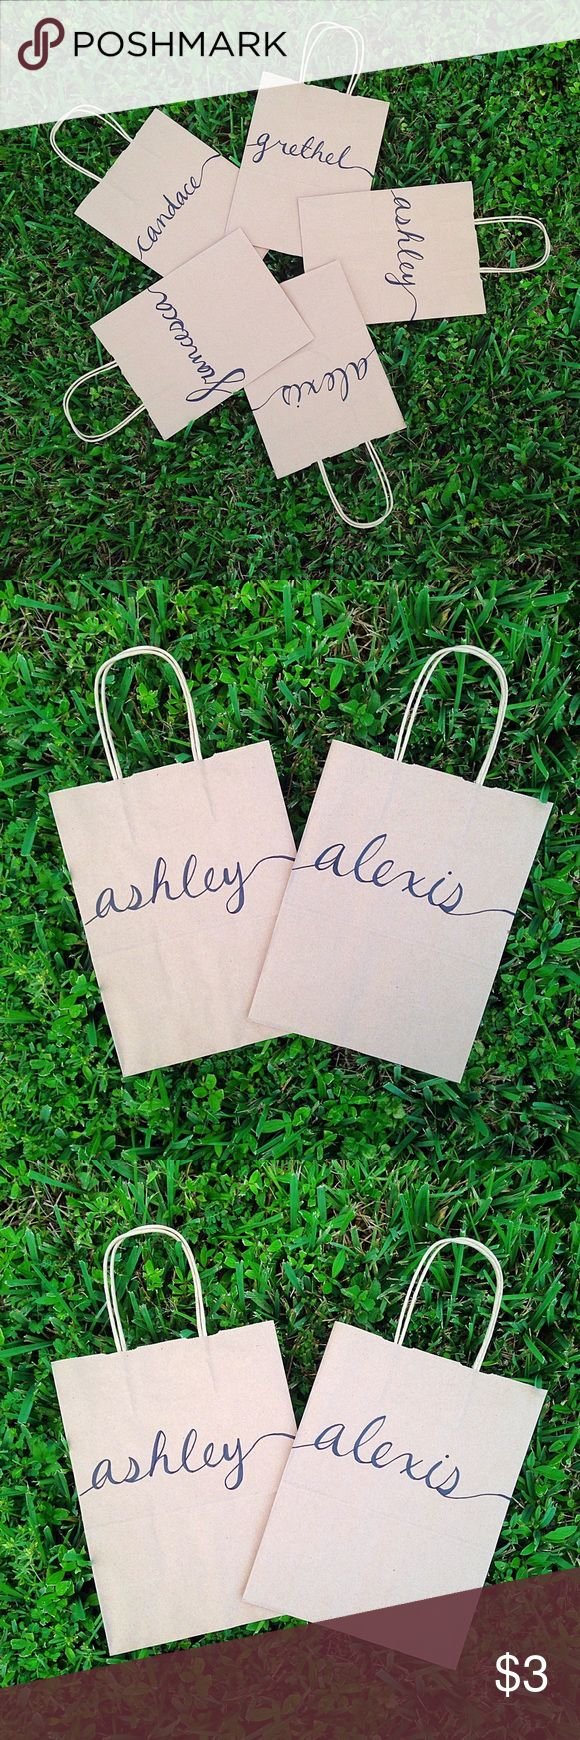 Personalized Gift Bags ❁ Brown custom personalized gift bags! Measures 10.5x8x4.5, I can do any names/phrases! These are great for bridesmaids, wedding welcome bags, bachelorette parties, bridal showers, thank you gifts, Christmas presents, birthdays, & much more!! Minimum order of 2 bag required & orders of large quantities will be discounted ♡ Please comment below if you would like a custom listing made for you ❁ Bags